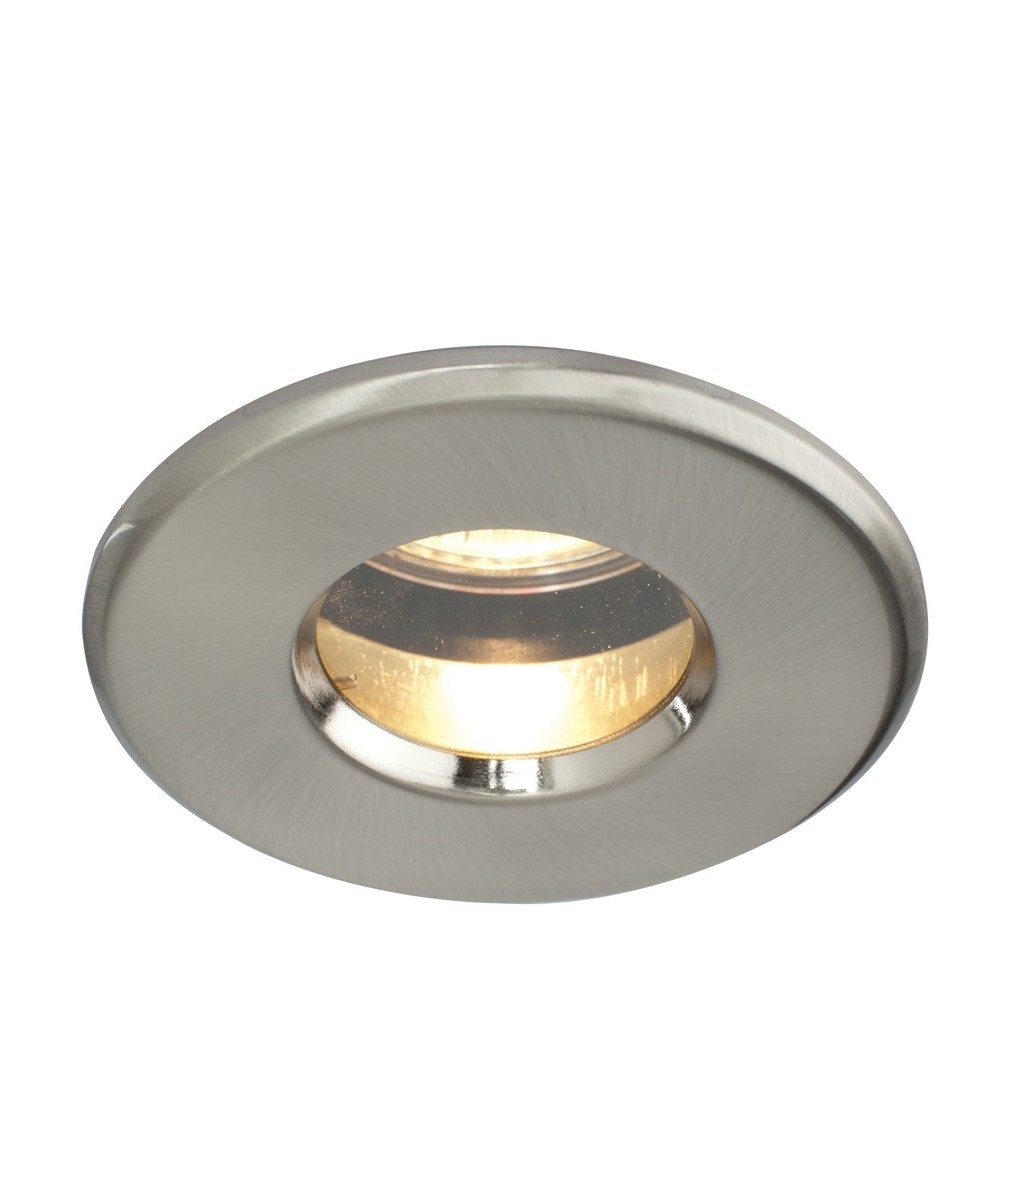 Bathroom Ceiling Downlights two piece ip65 12v bathroom downlight